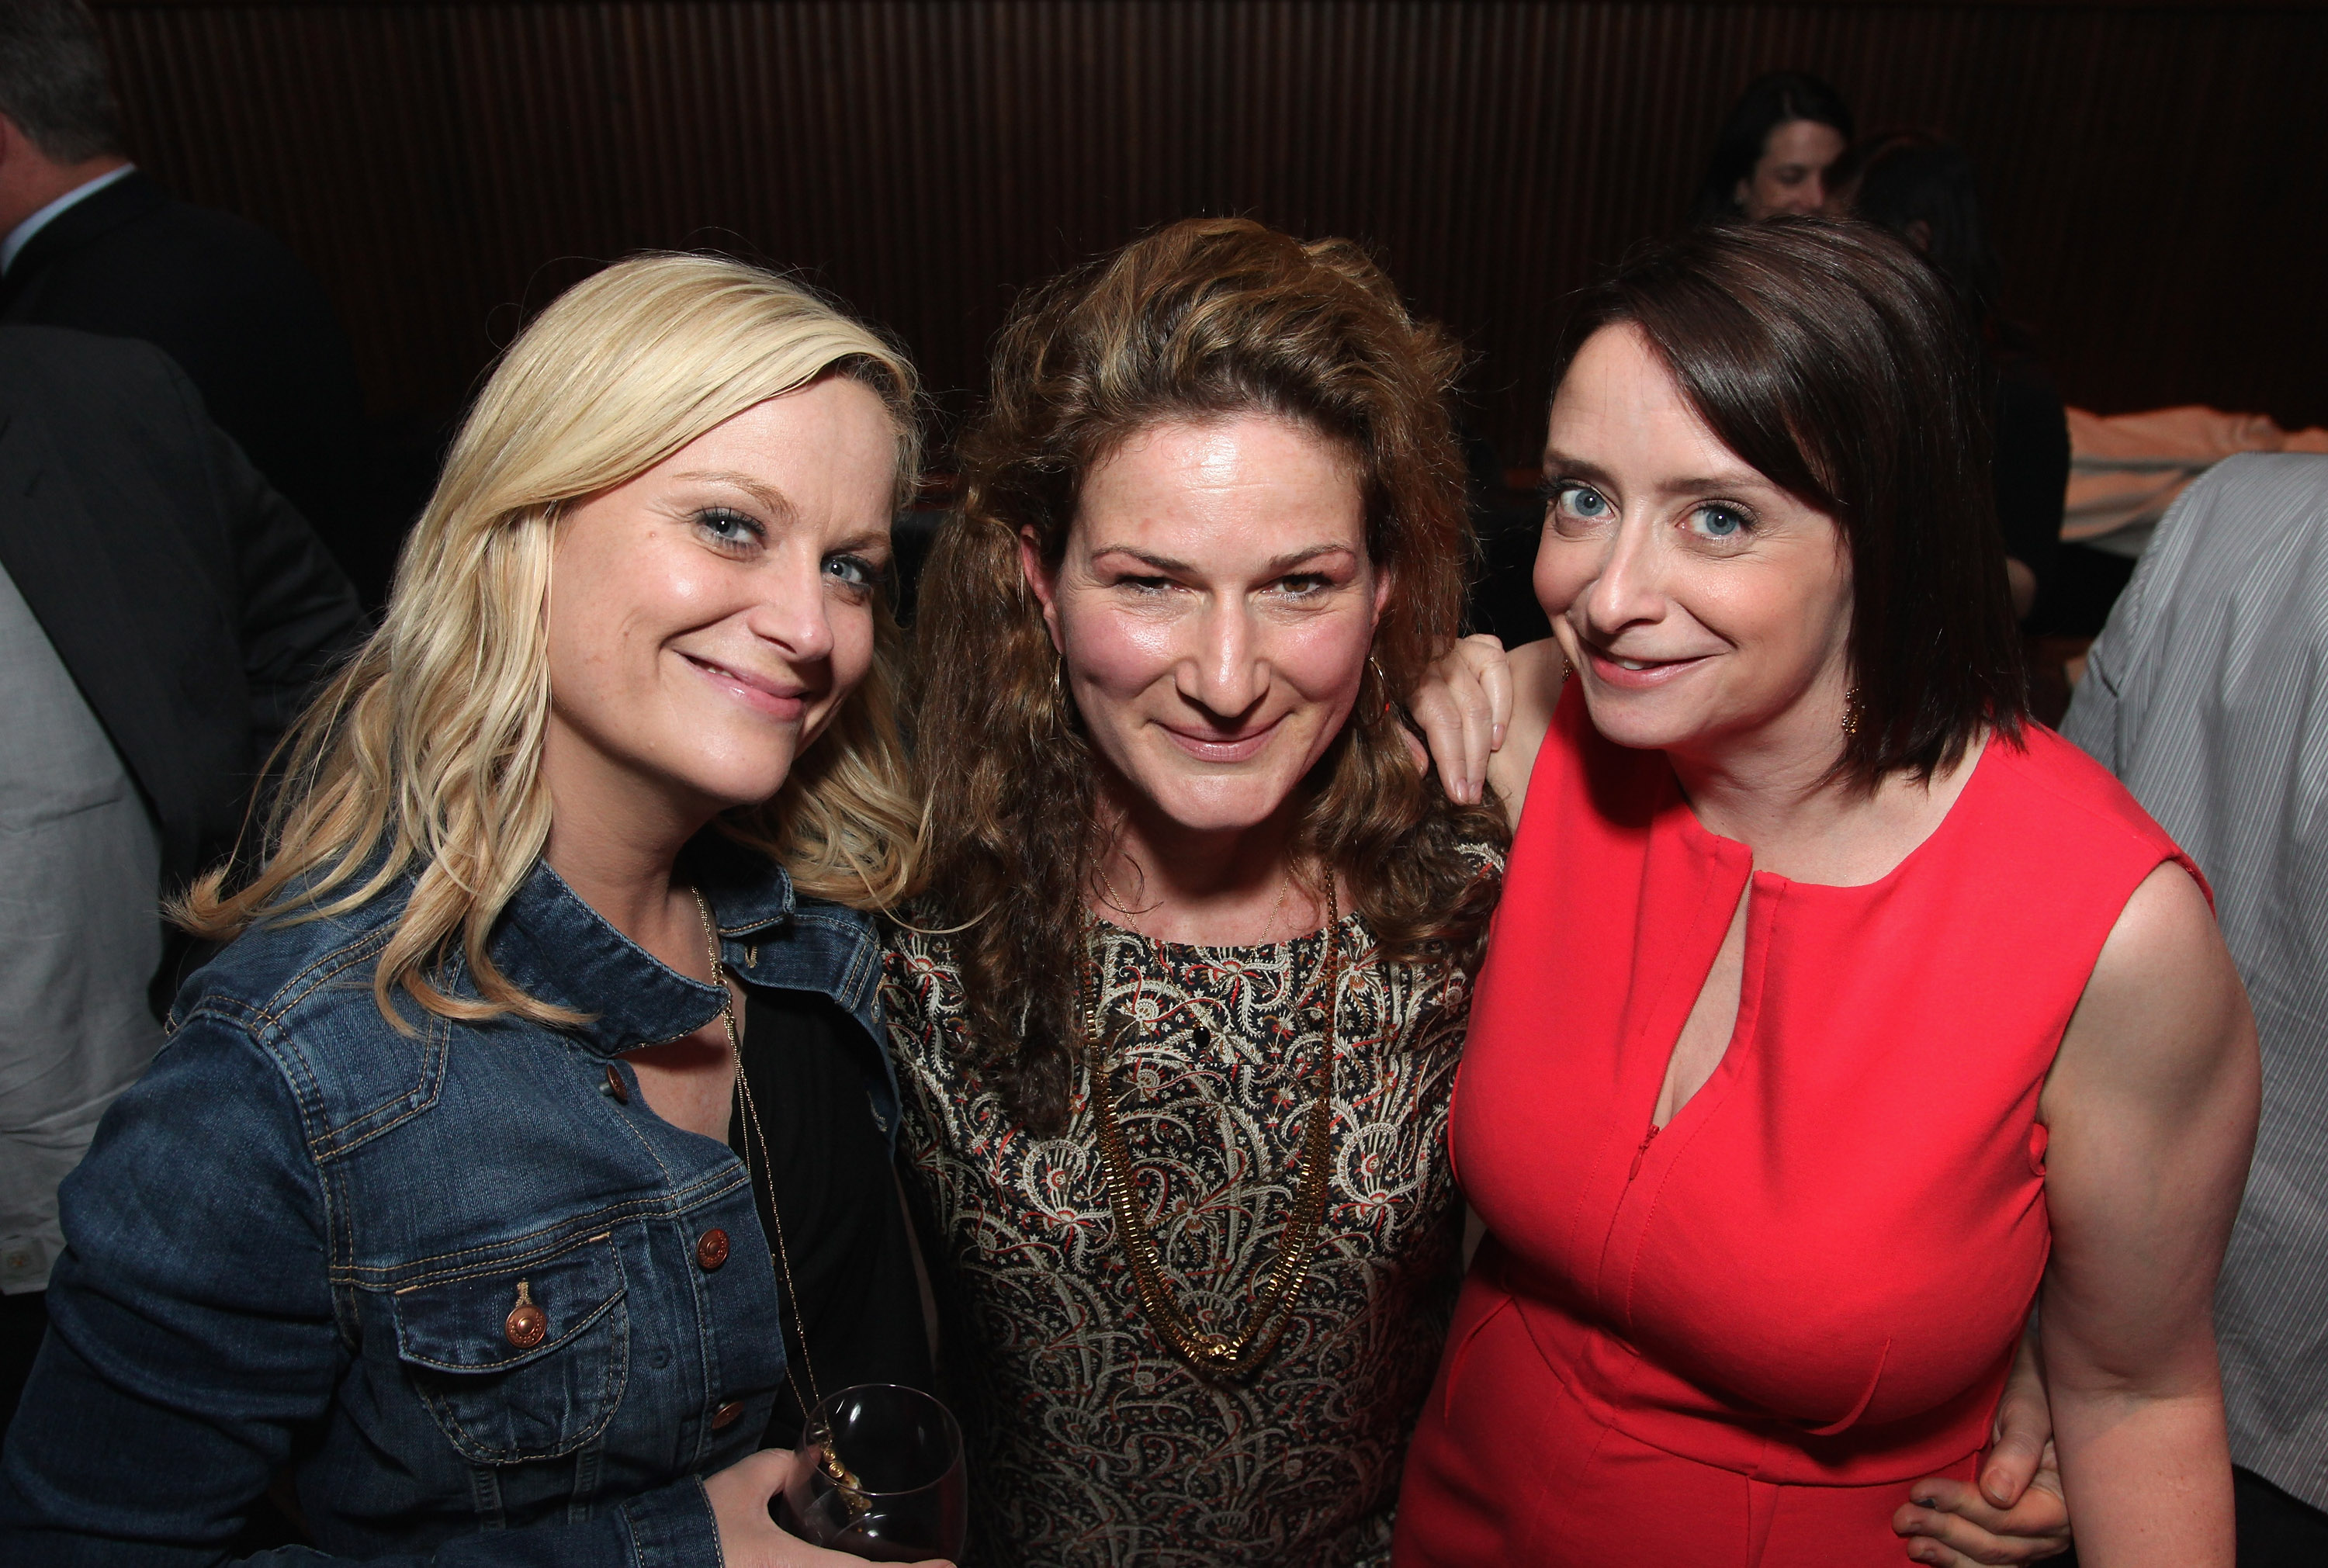 'Saturday Night Live' alums Amy Poehler, Ana Gasteyer and Rachel Dratch at a ...